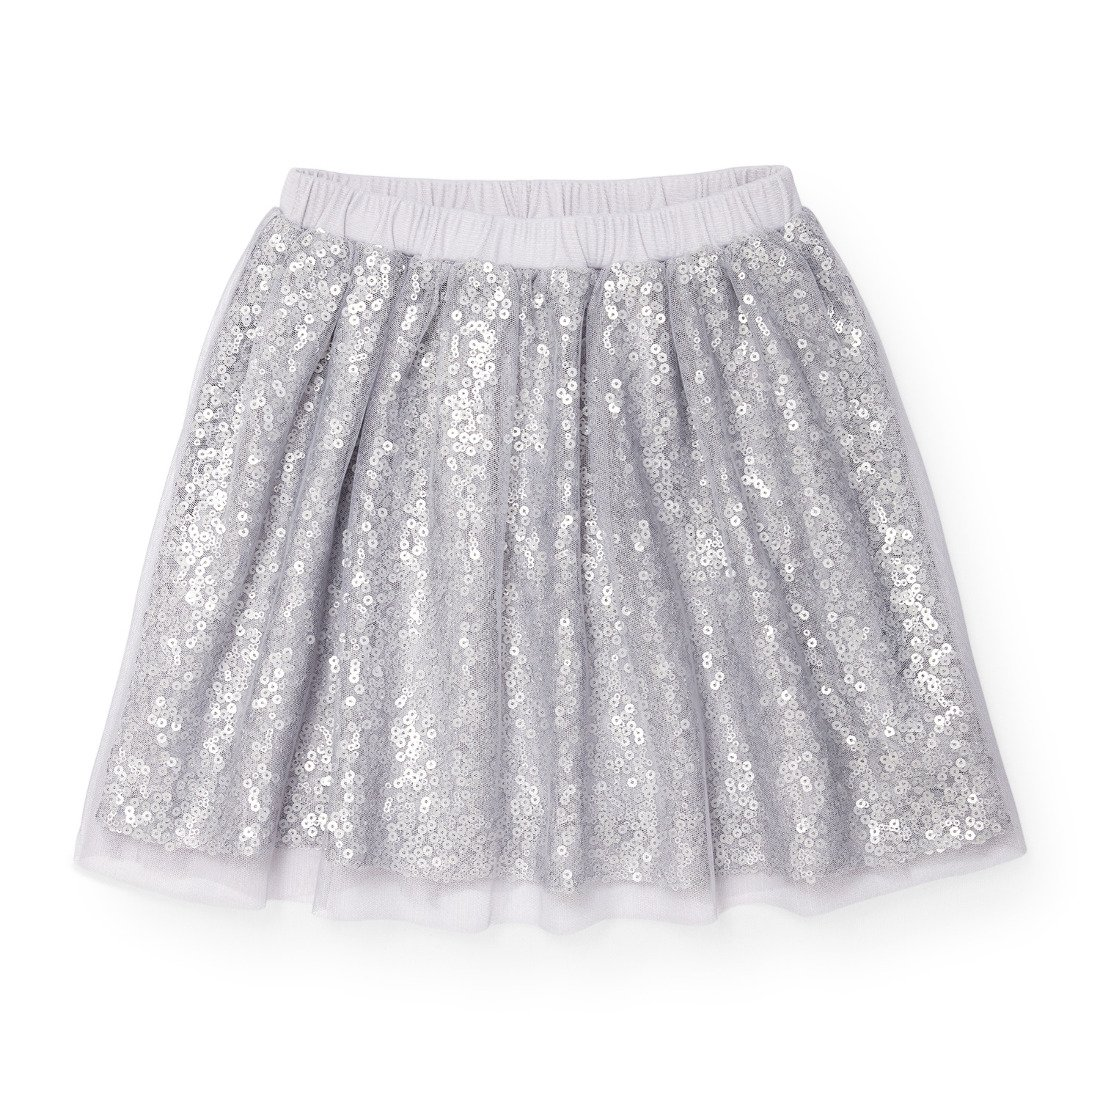 The Children's Place Big Girls' Skirt, Ice Cave 90582, XL (14) by The Children's Place (Image #1)